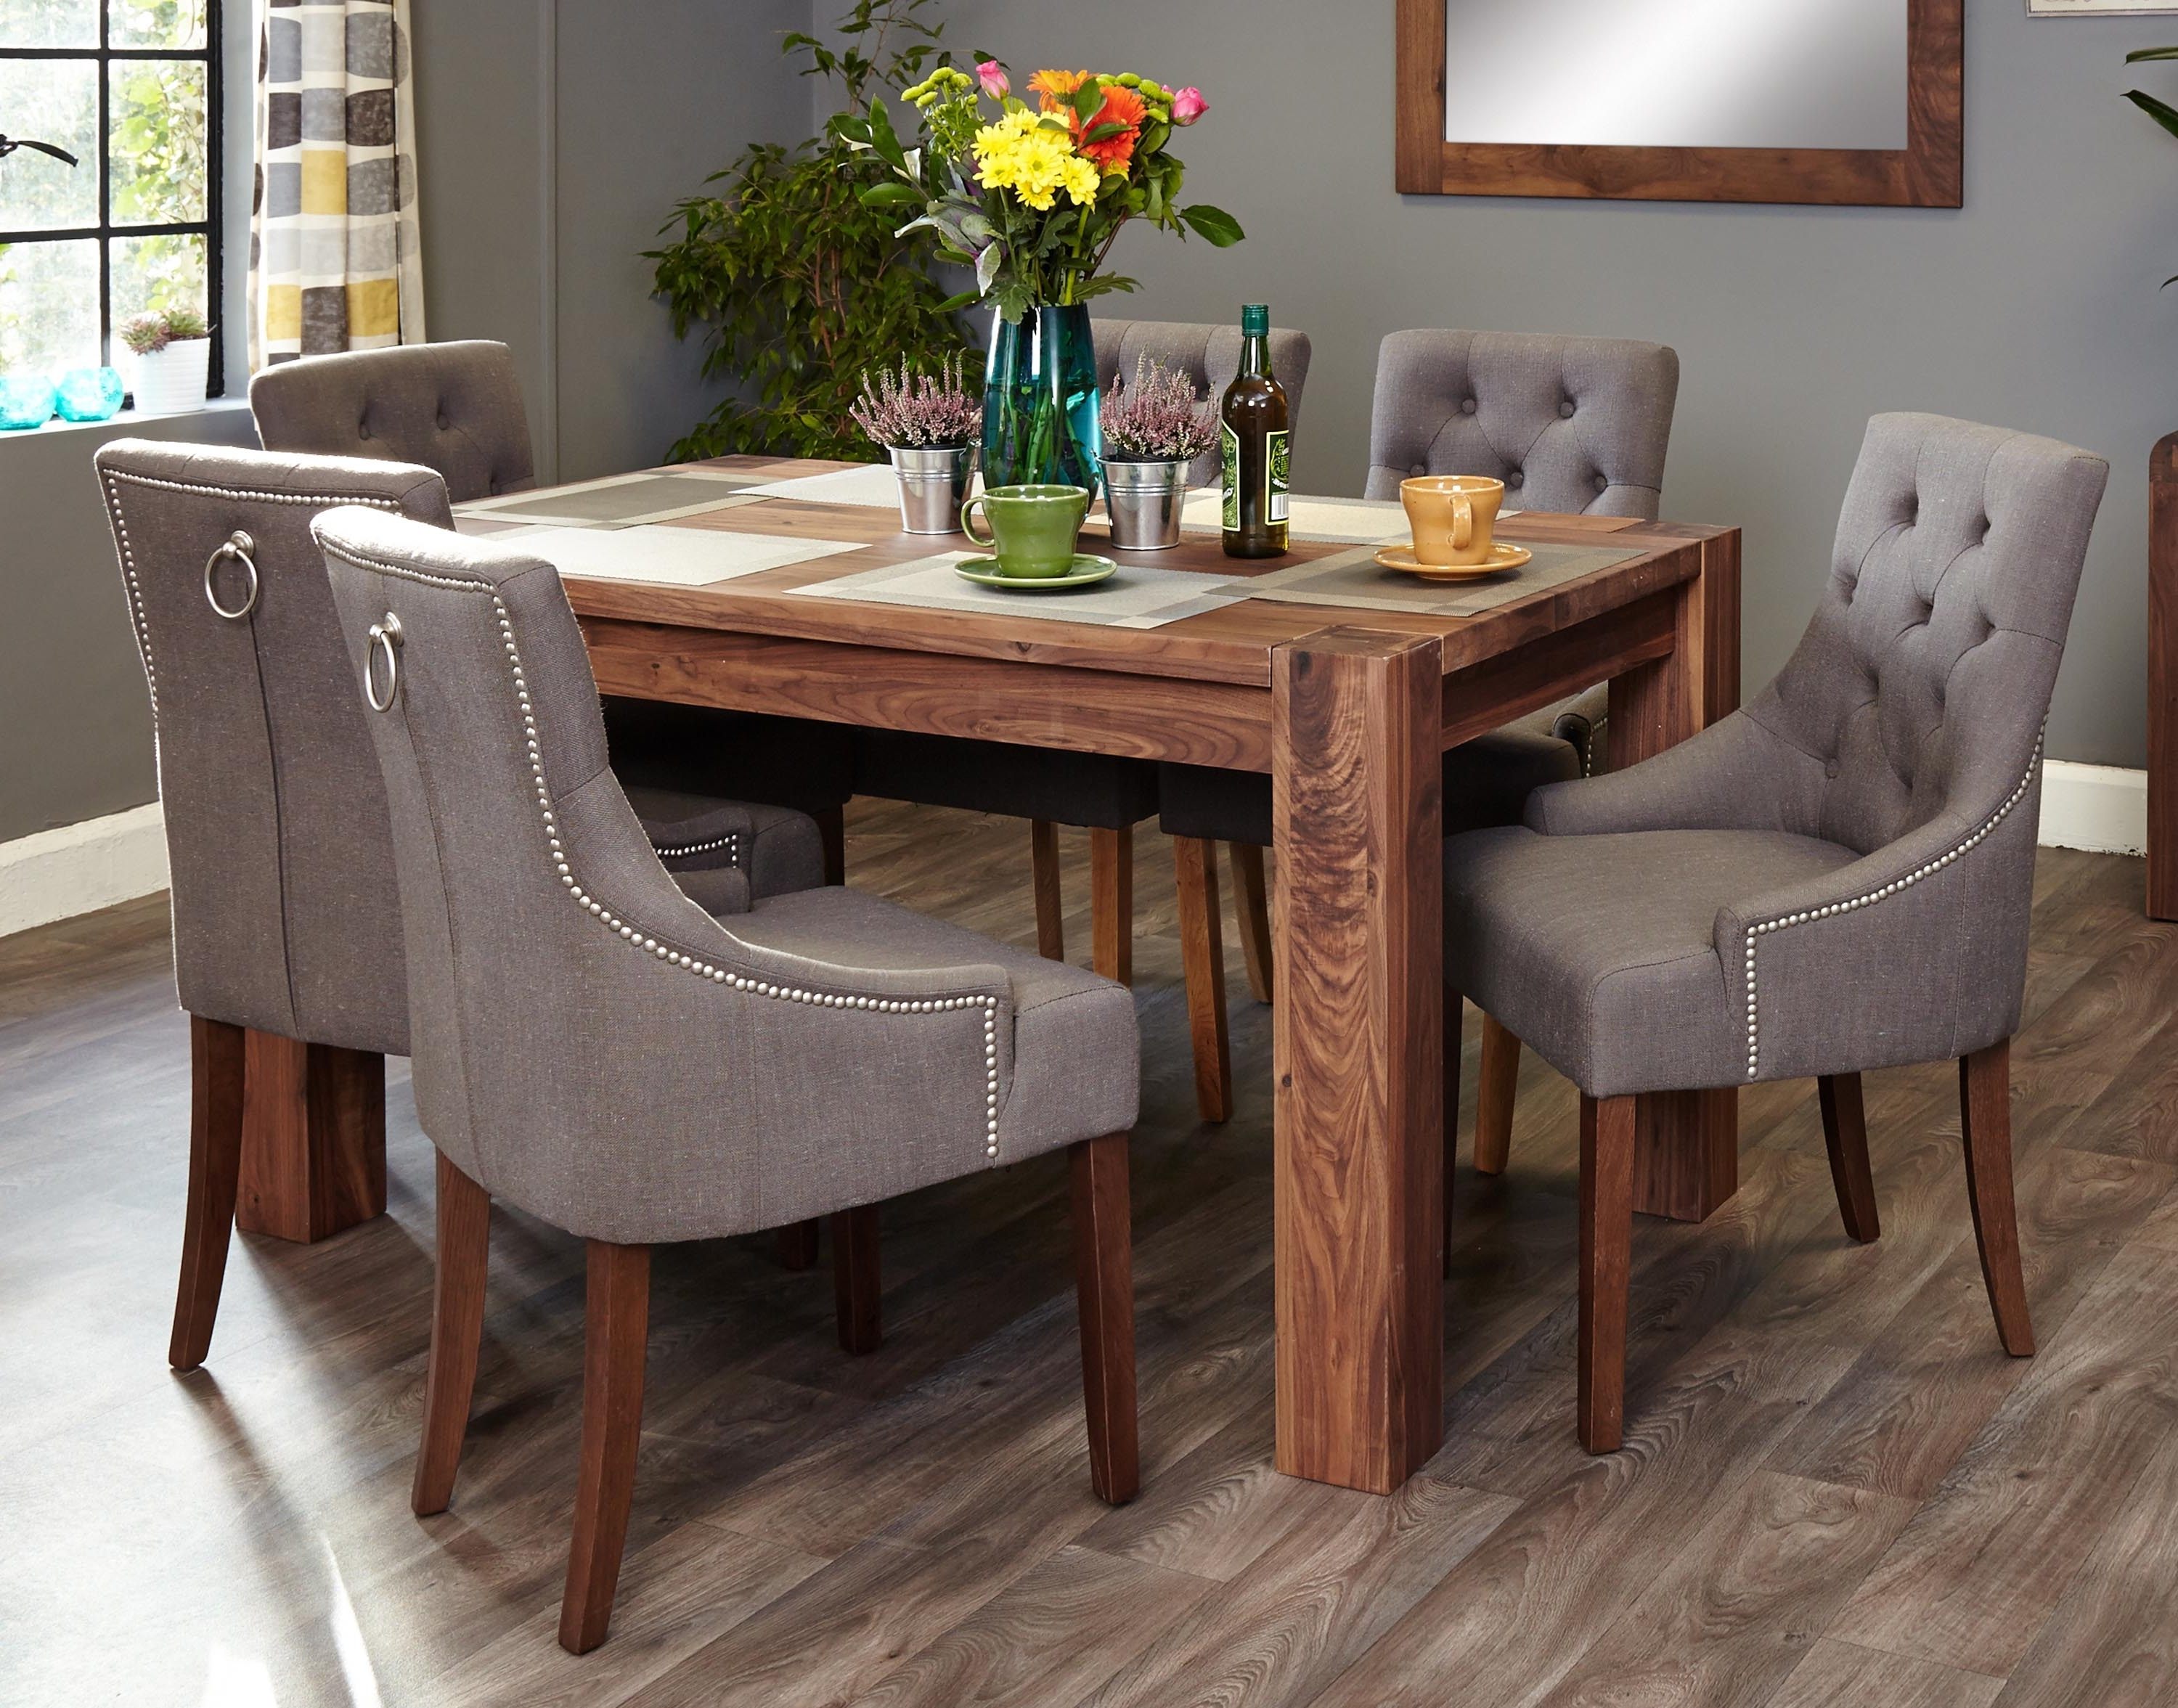 Shiro Walnut 6 Seater Dining Table Set (Accent) (Socdr04B Cdr03F) Inside Current 6 Seater Dining Tables (View 2 of 25)